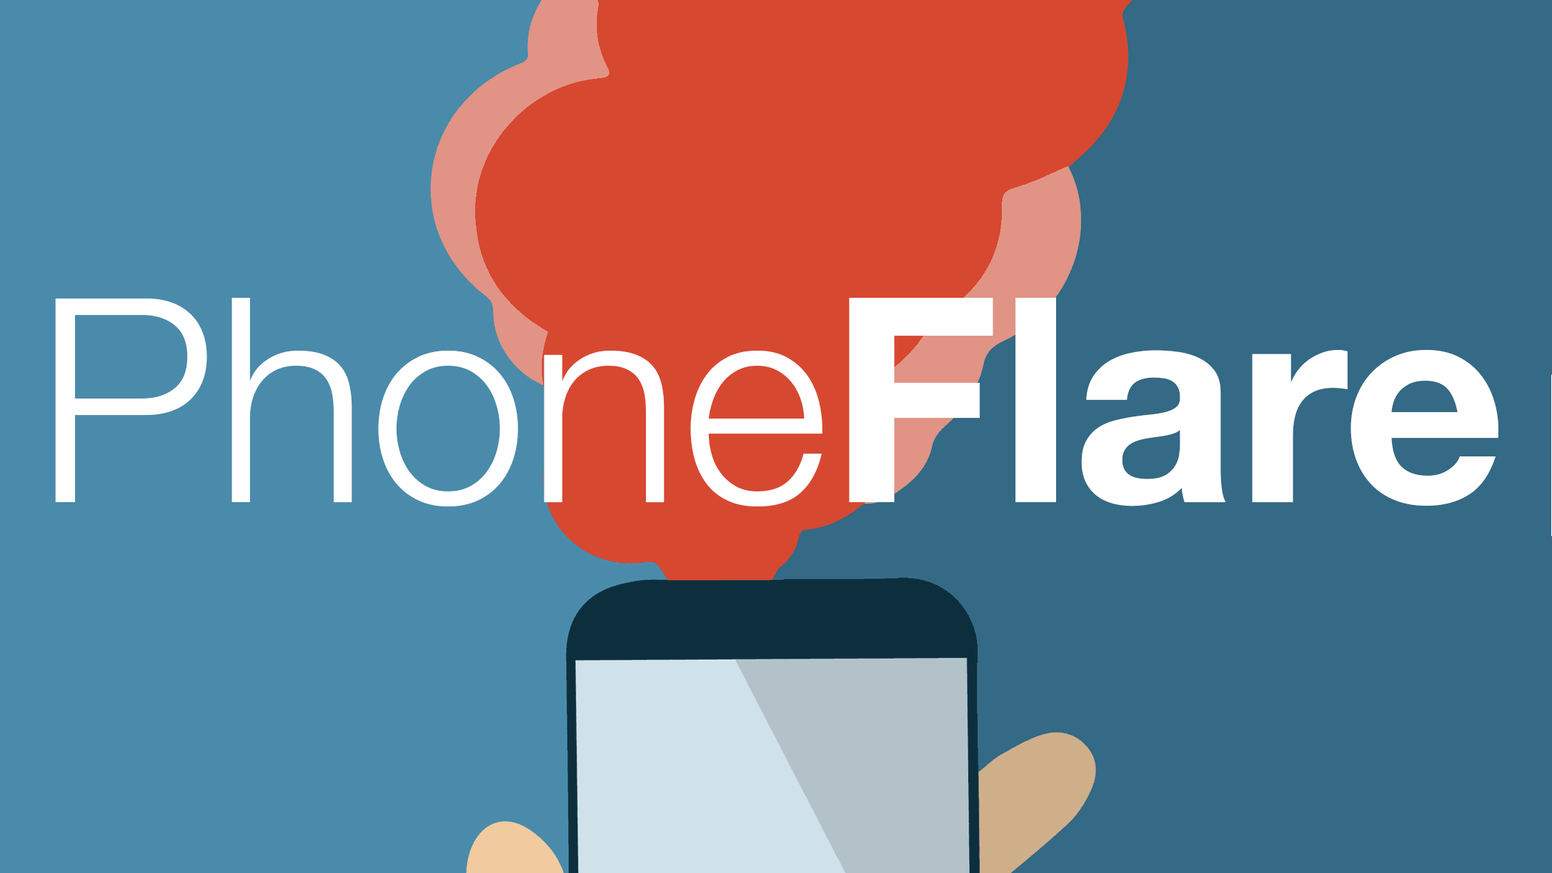 PhoneFlare shares your location with friends, family and school when in danger using sophisticated tech. 100% Free and Volunteer Run.